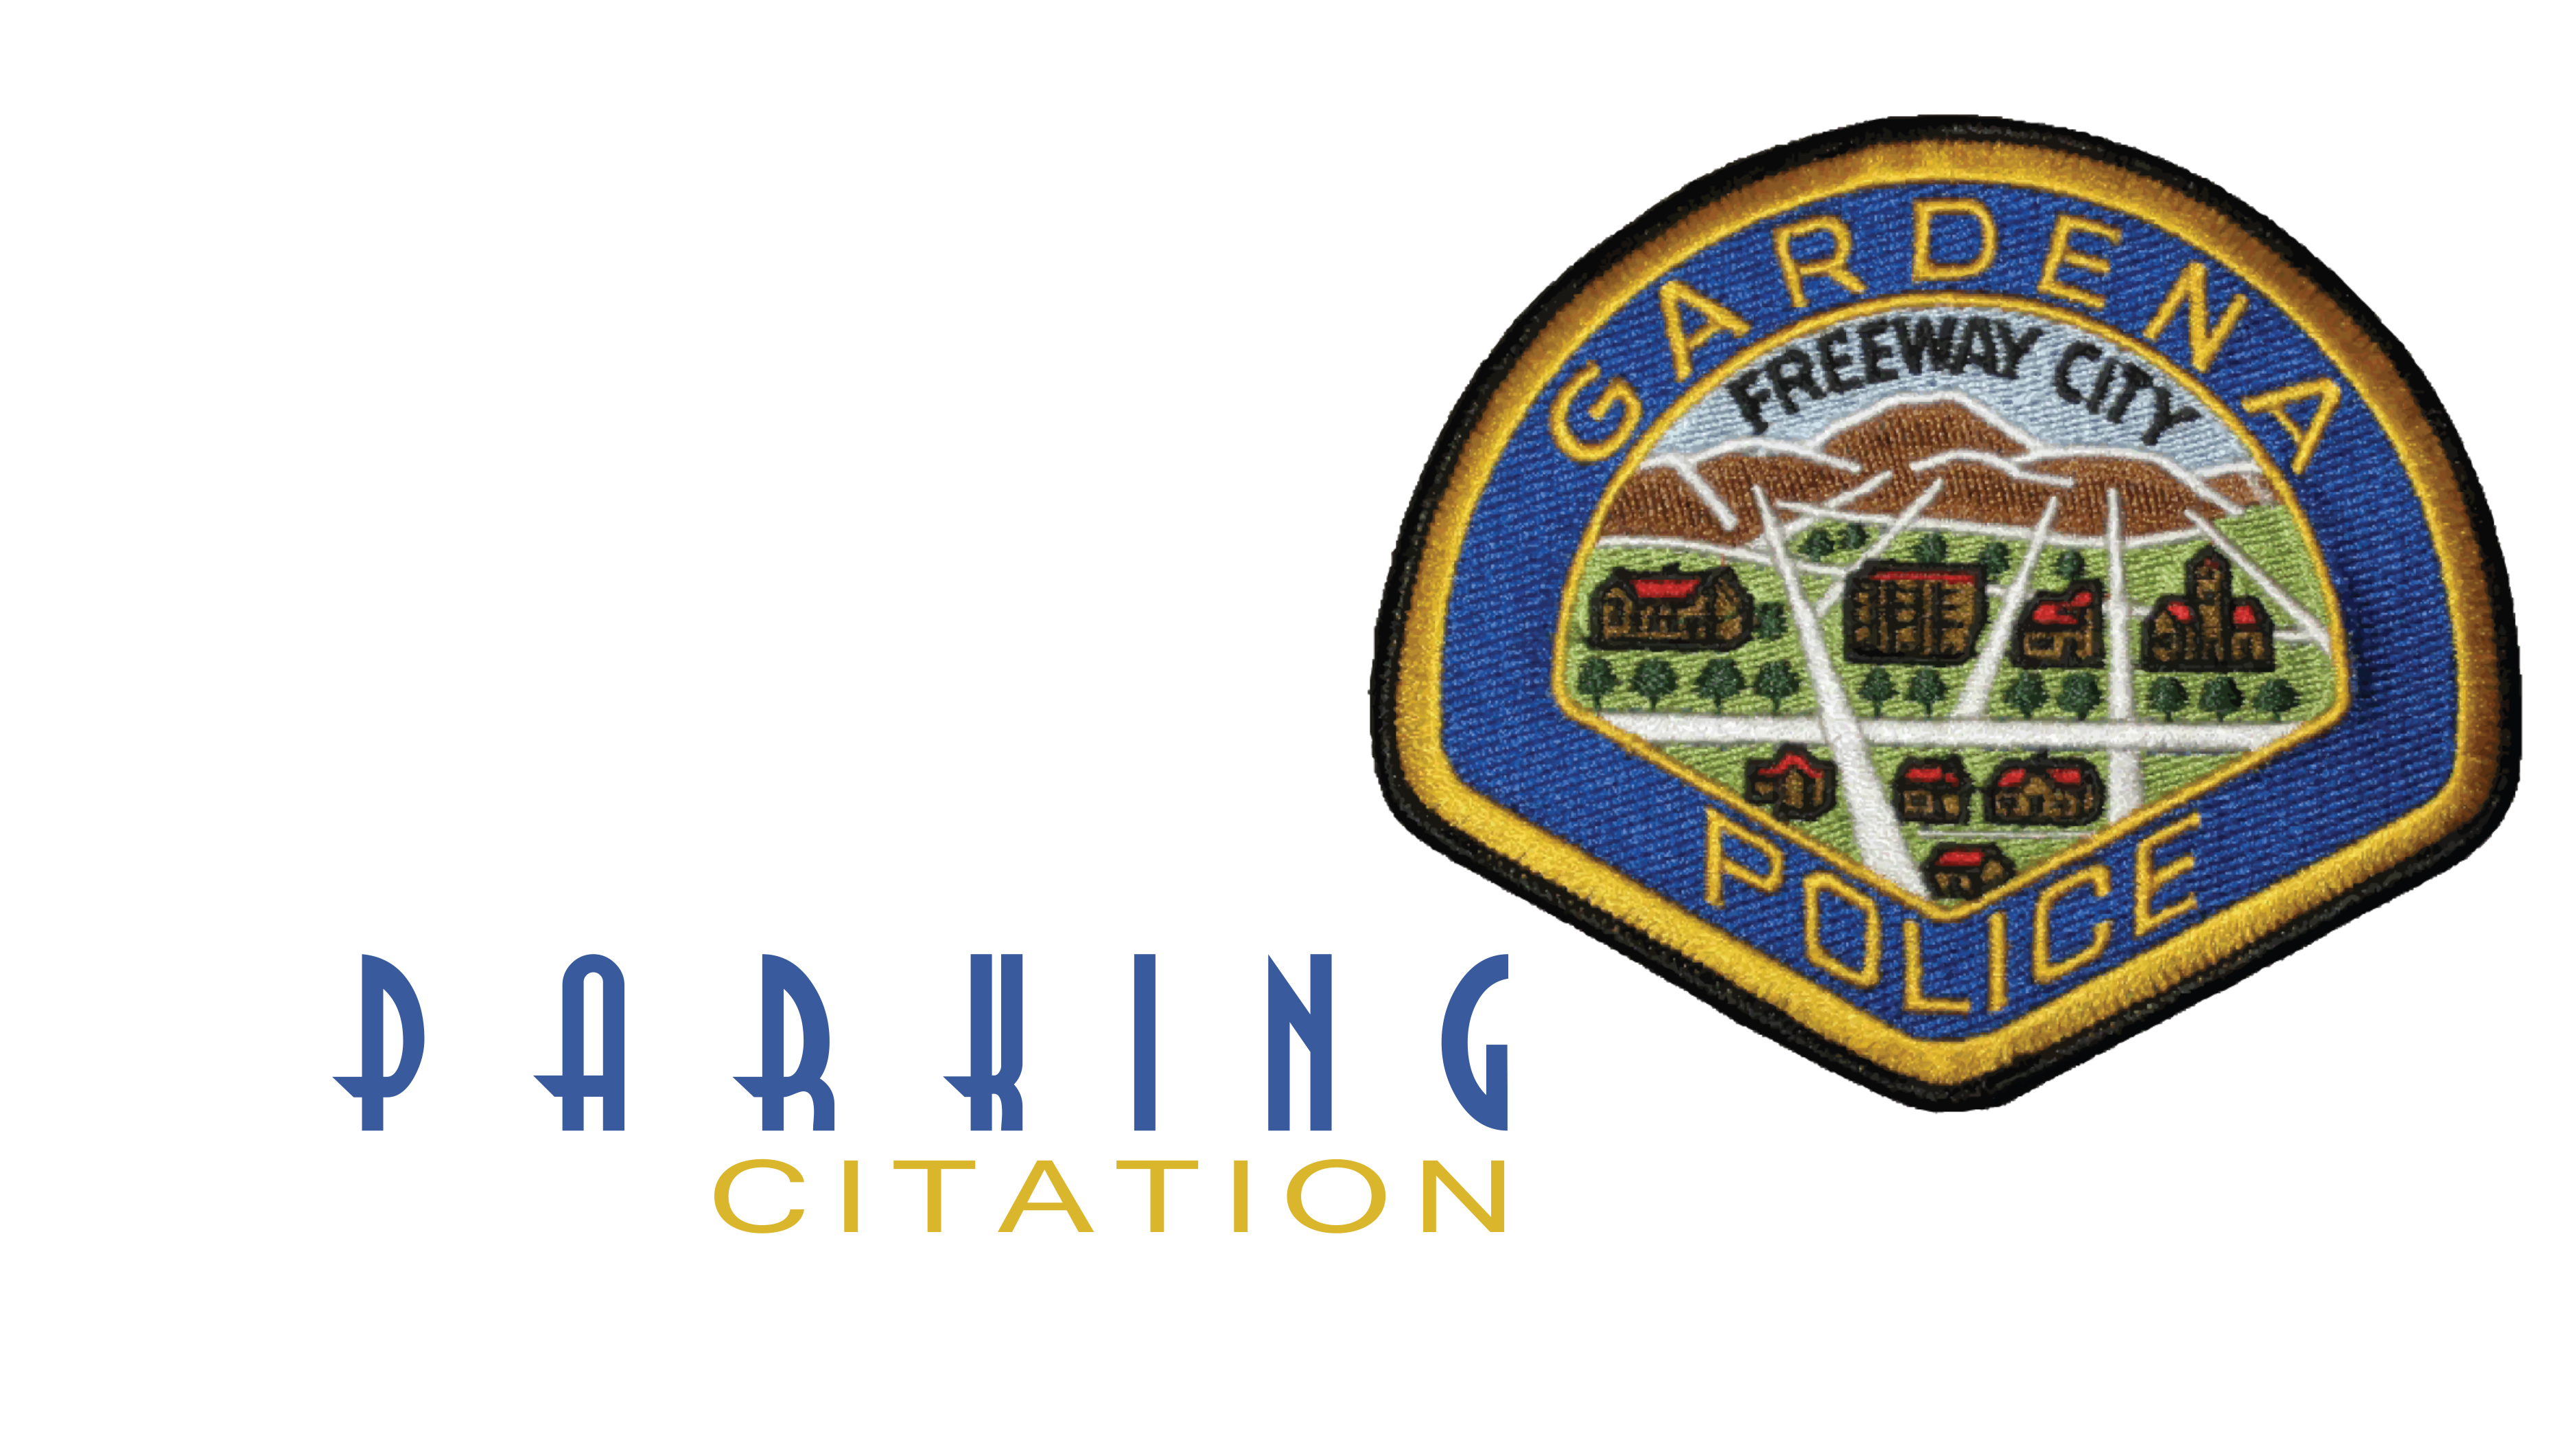 parking citation online